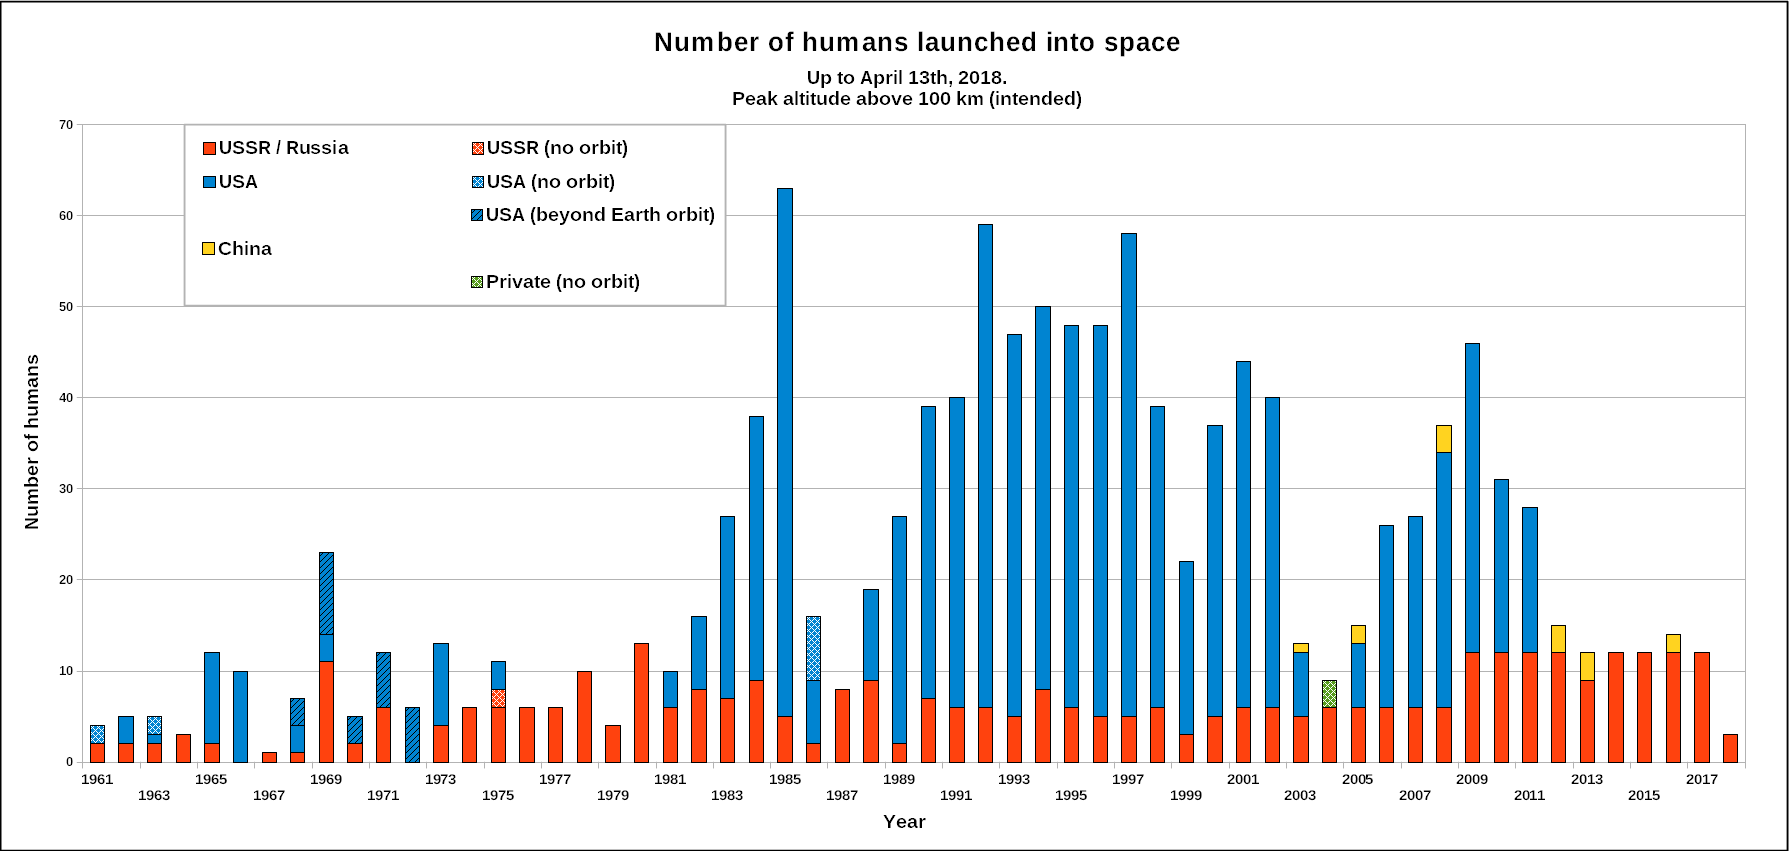 ... Number of humans launched into space bar chart.png - Wikimedia Commons